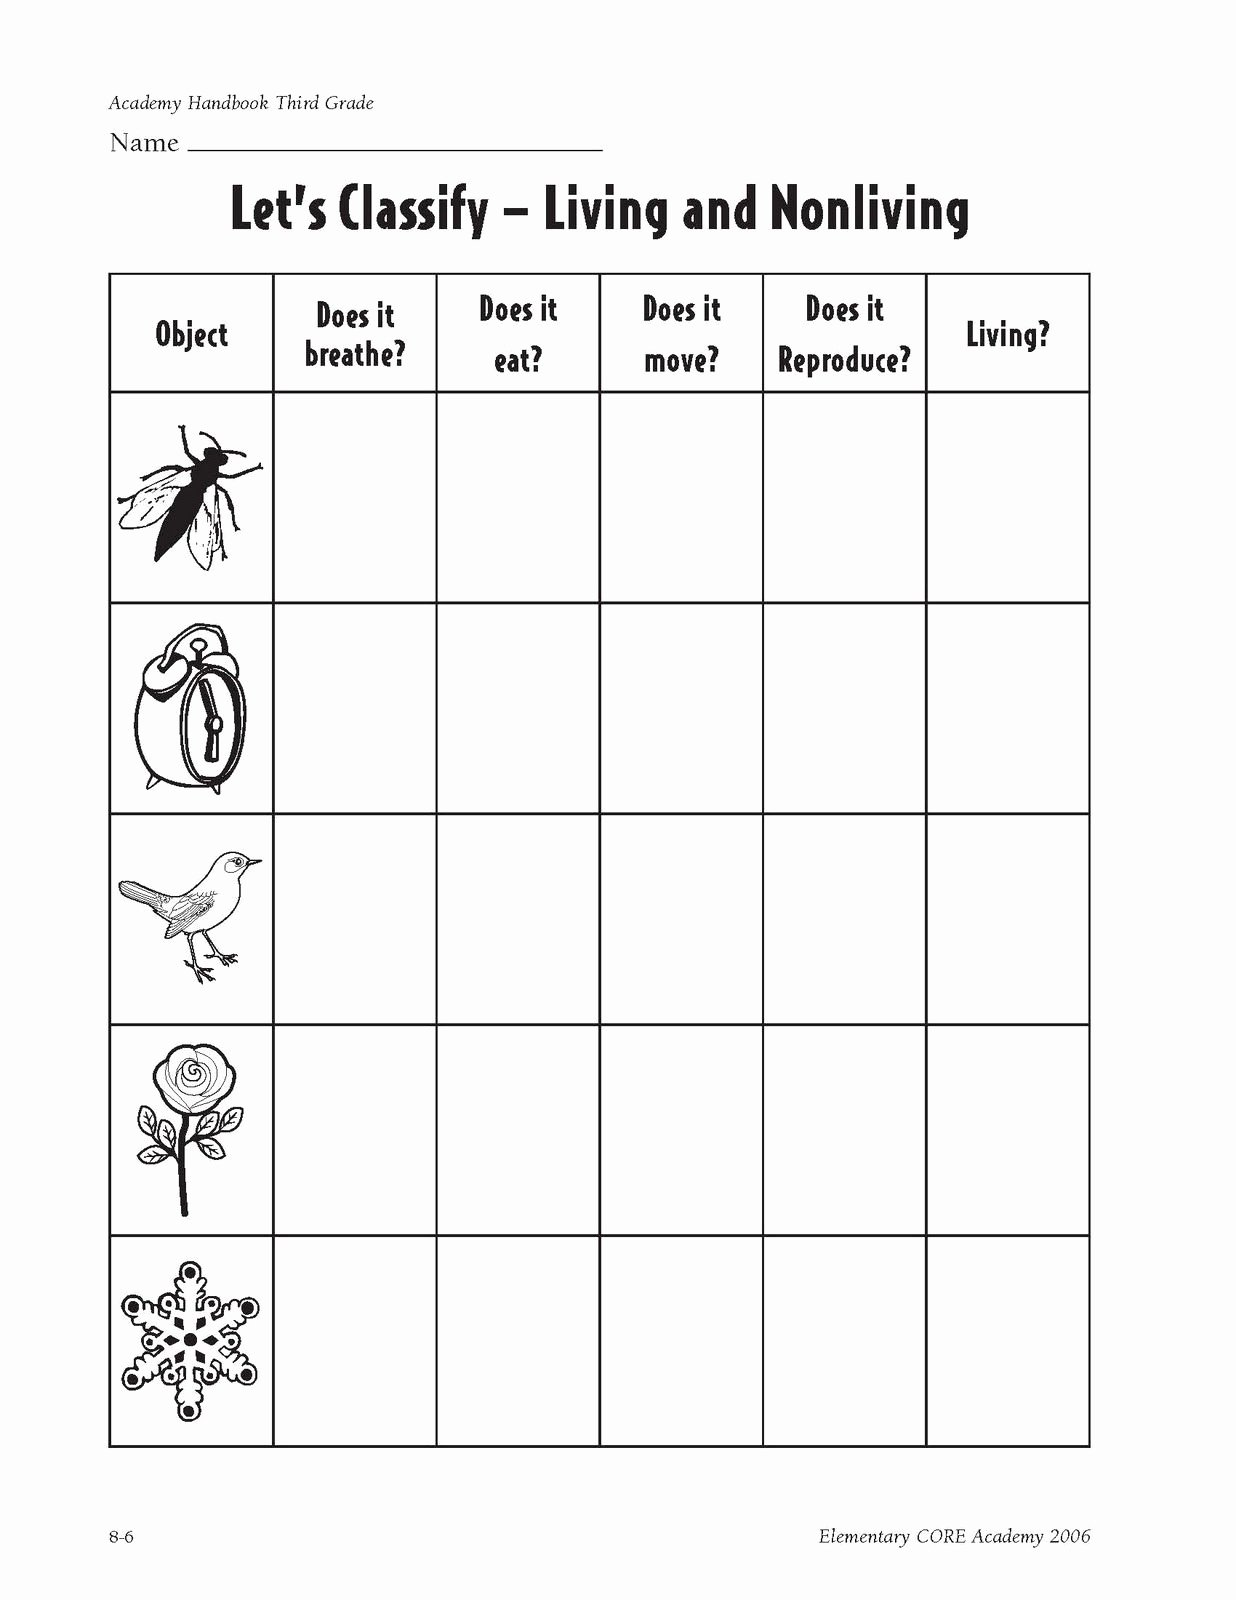 Characteristics Of Living Things Worksheet Kids Characteristics Of Living Things Made Of Cells Obtain and